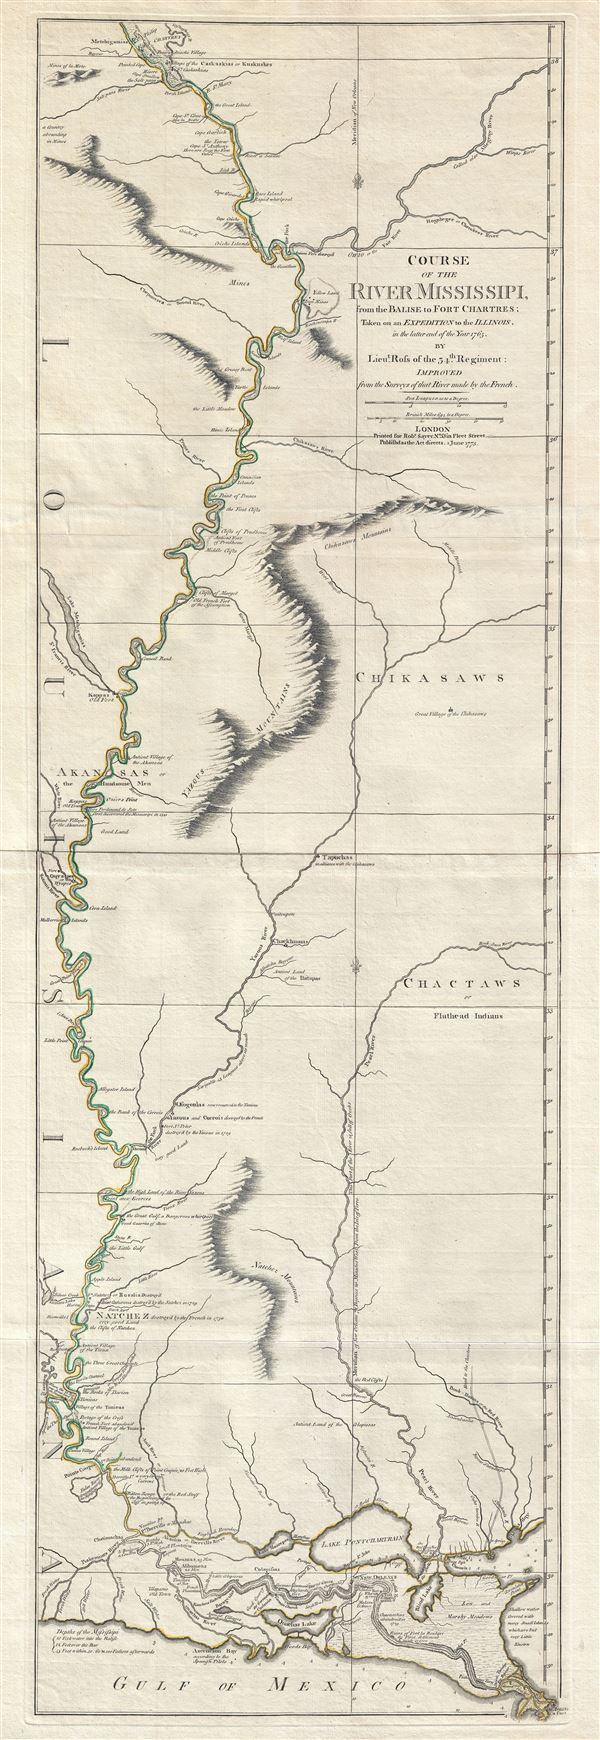 Course of the River Mississipi, from the Balise to Fort Chartres; Taken on an Expedition to the Illinois, in the latter end of the Year 1765.